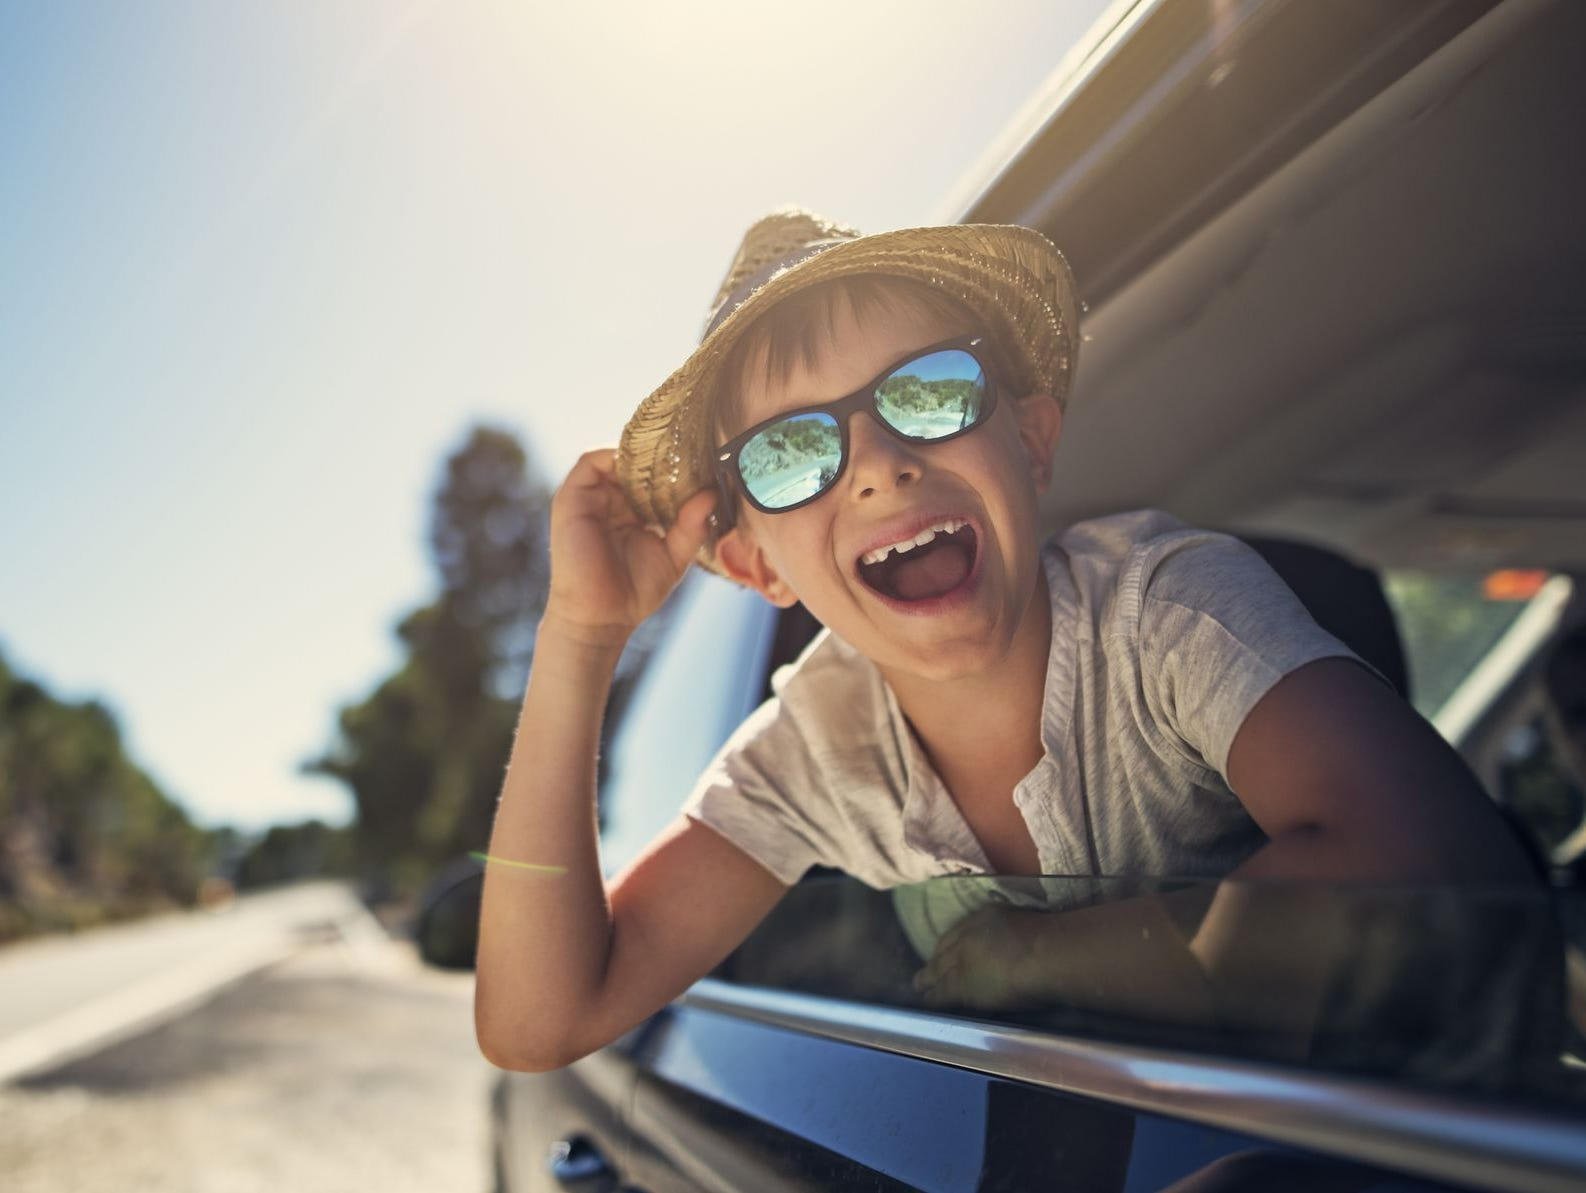 Hit the open road this summer with a $100 Shell gift card. Enter 5/30-6/30.